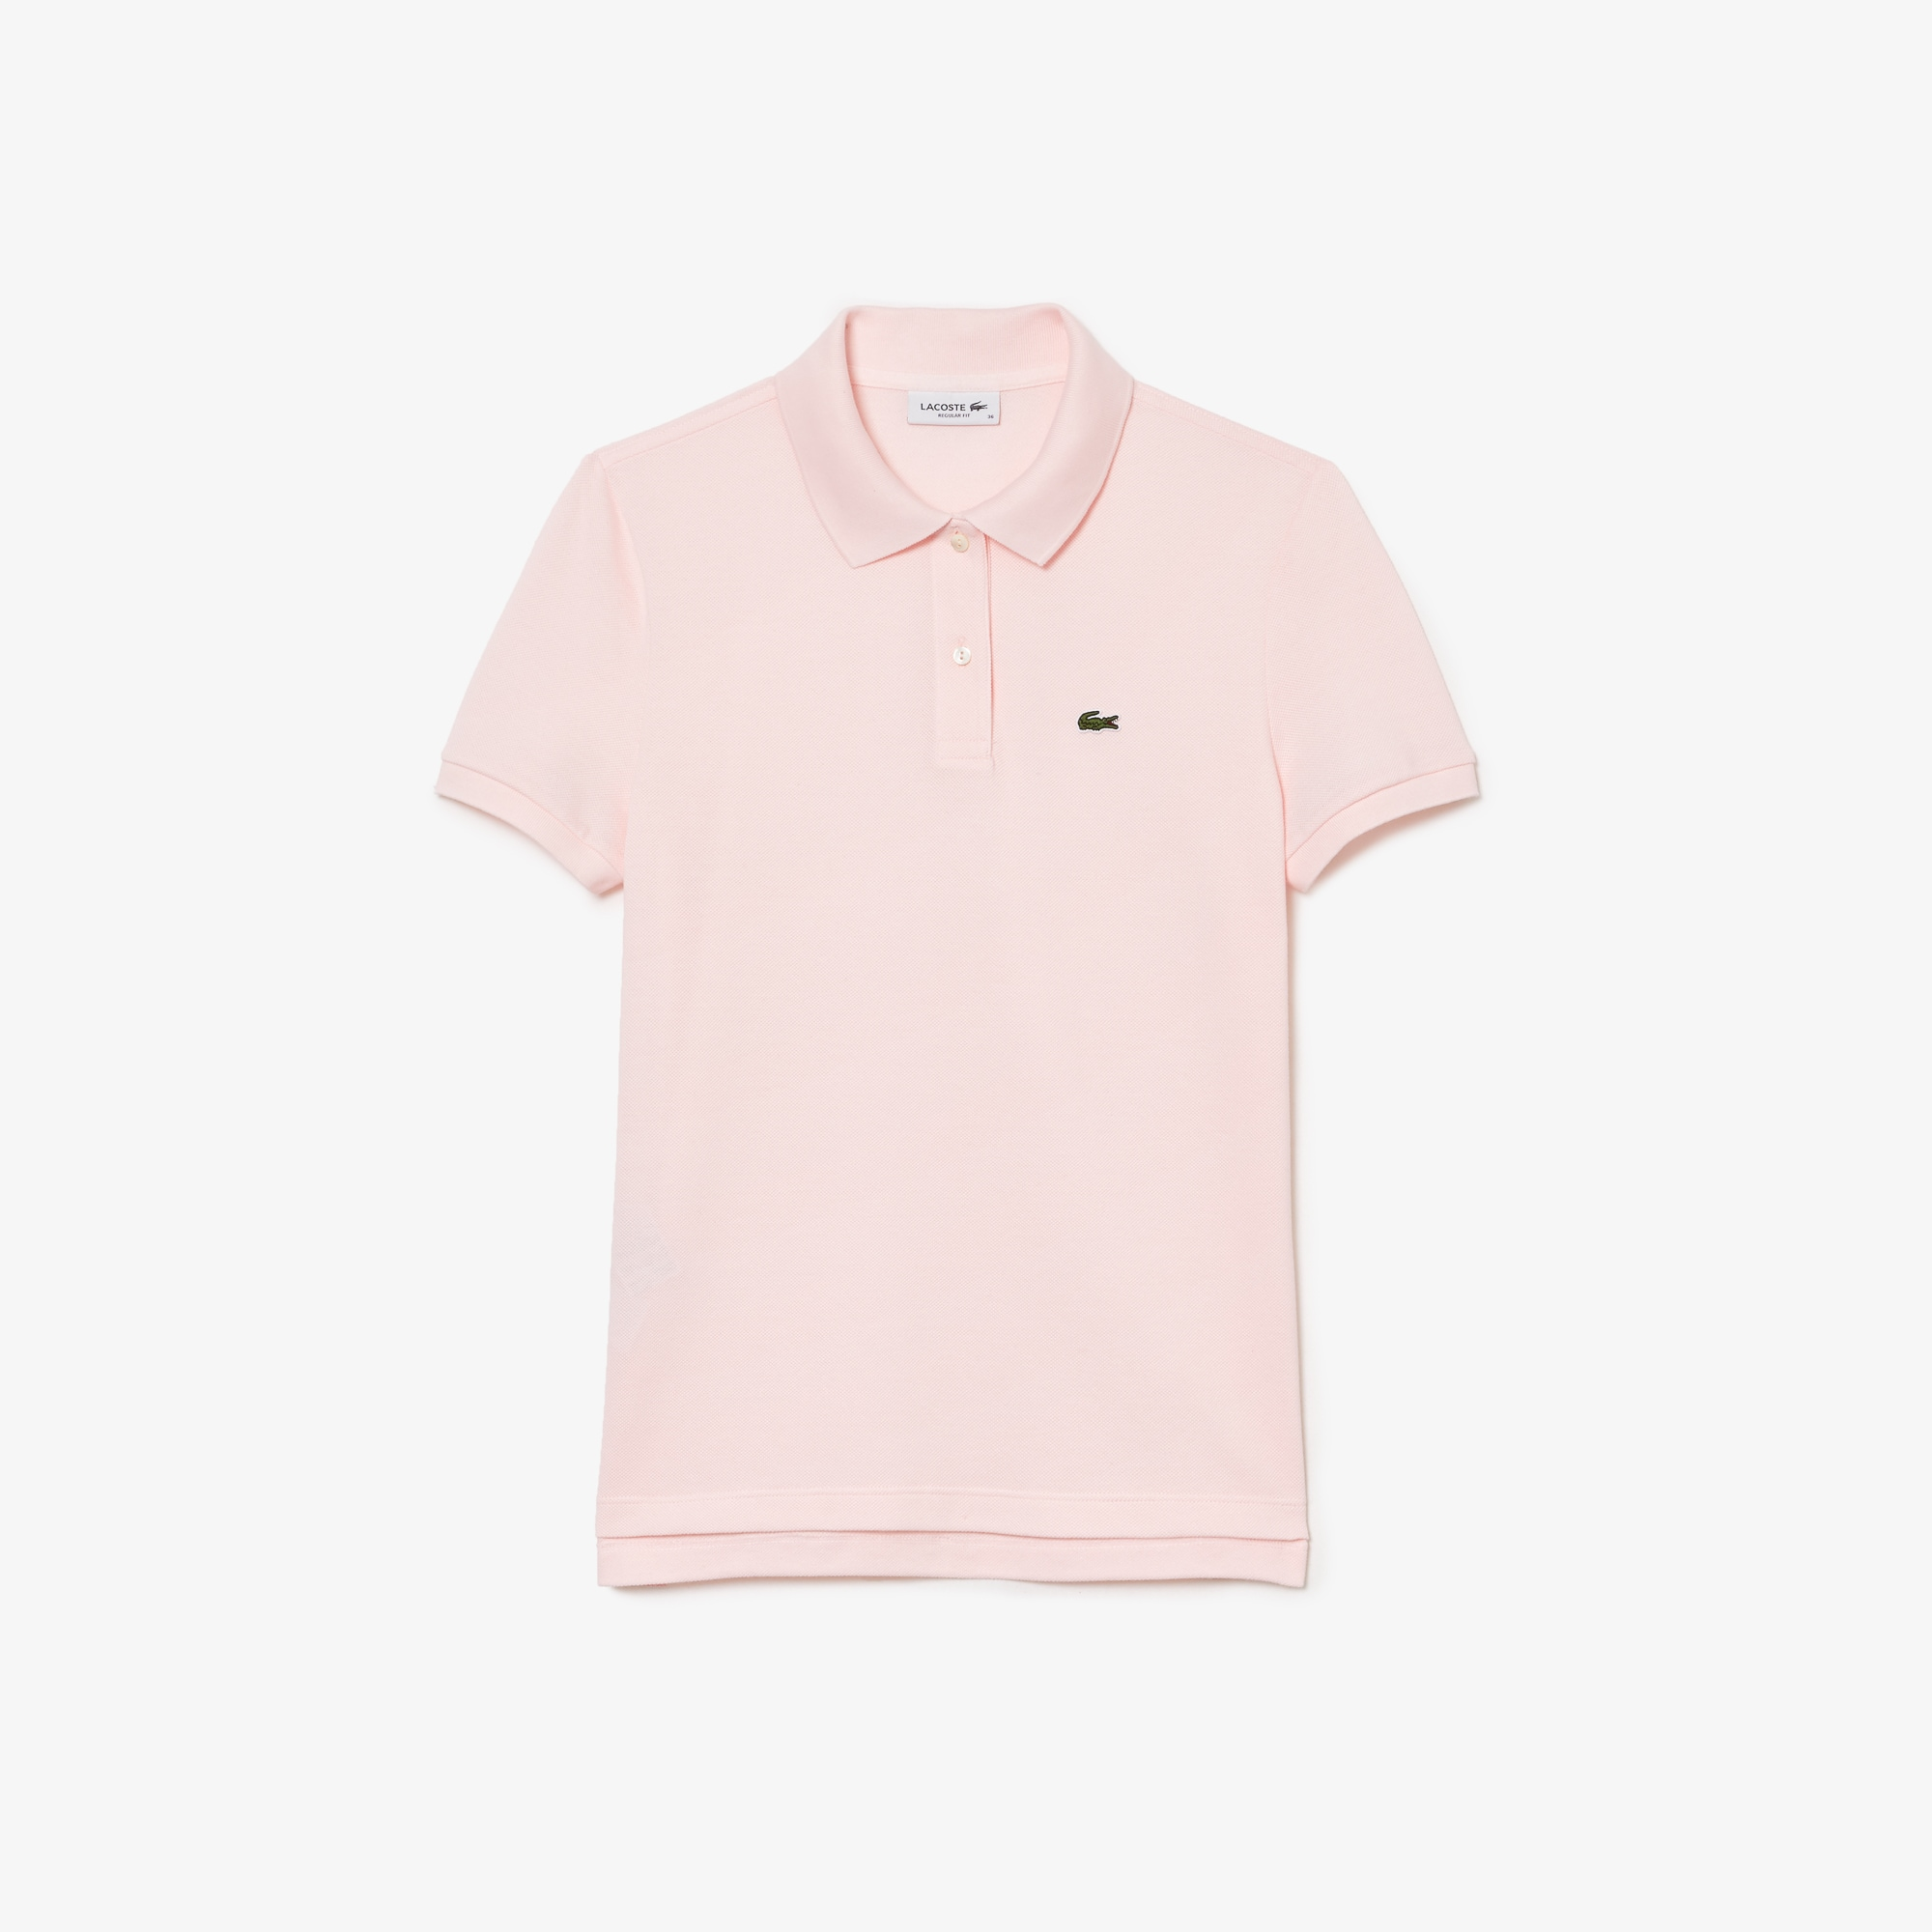 d255a529c2be Women s Polo Shirts